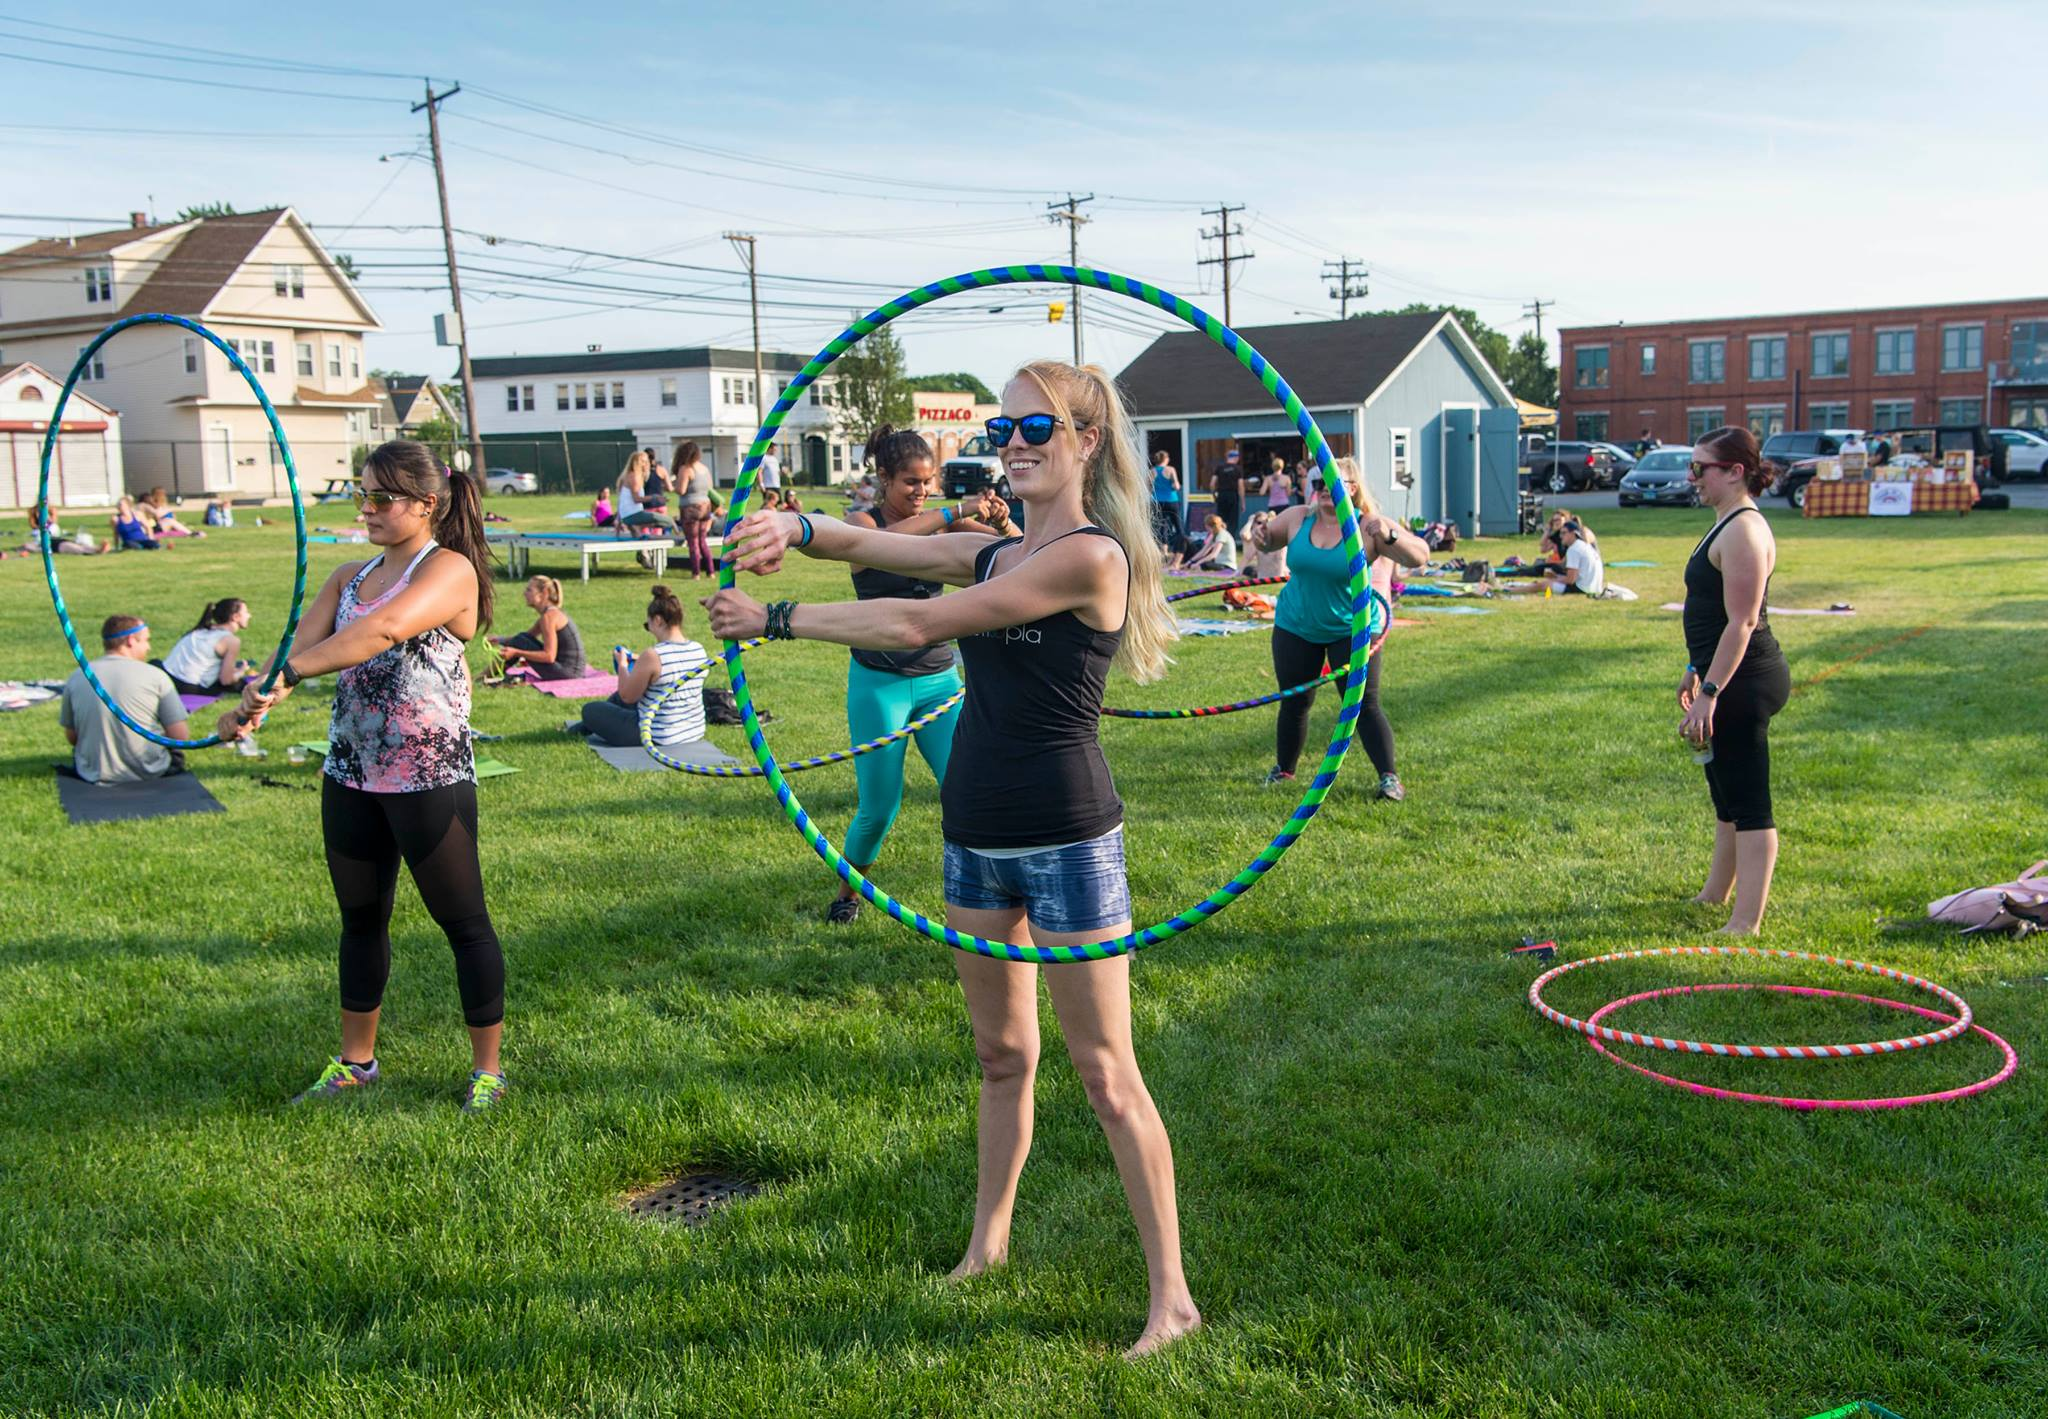 About Kailey   Avid beach bum and local Hoopologist. I've found my passion in hooping and can't wait to share it with you! I'm the owner of Hipnotic Hoopla, a certified hoop dance instructor, and have 8 years experience leading fun hoop adventures.